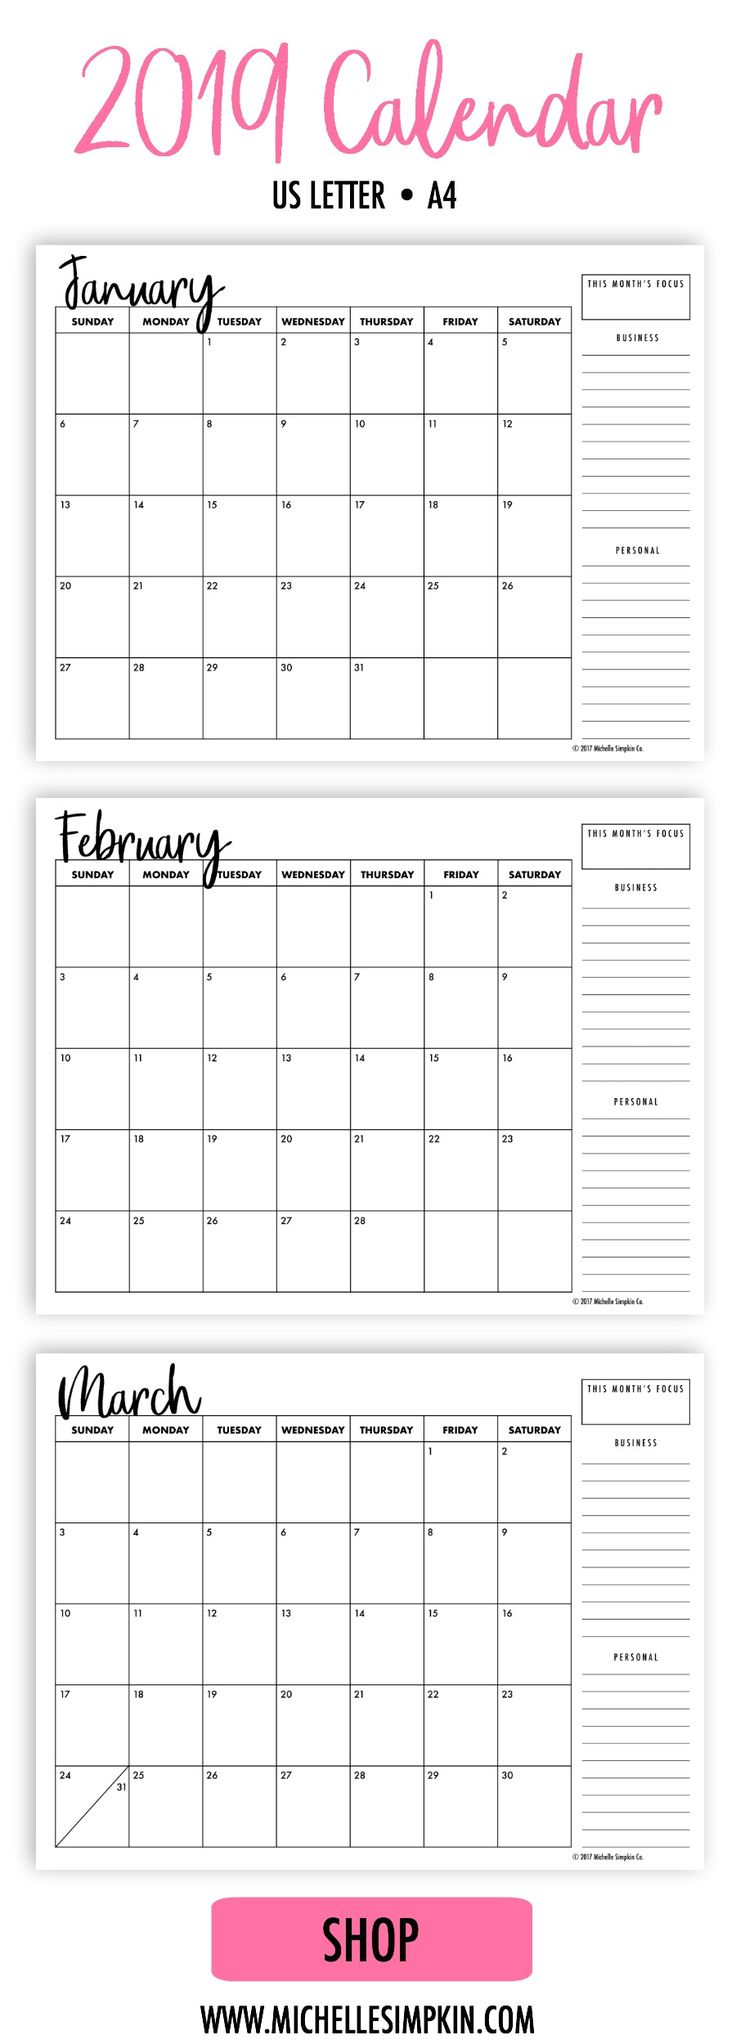 2019 Printable Calendar - A simple, minimalist design to help you organize your life and business. Keep everything all in one spot.   Printable Calendars | 2019 Calendar | Monthly Calendar | Monthly Planner | Printable Planner  #2019calendar #2019printable #monthlyplanner www.michellesimpkin.com/2019-calendars